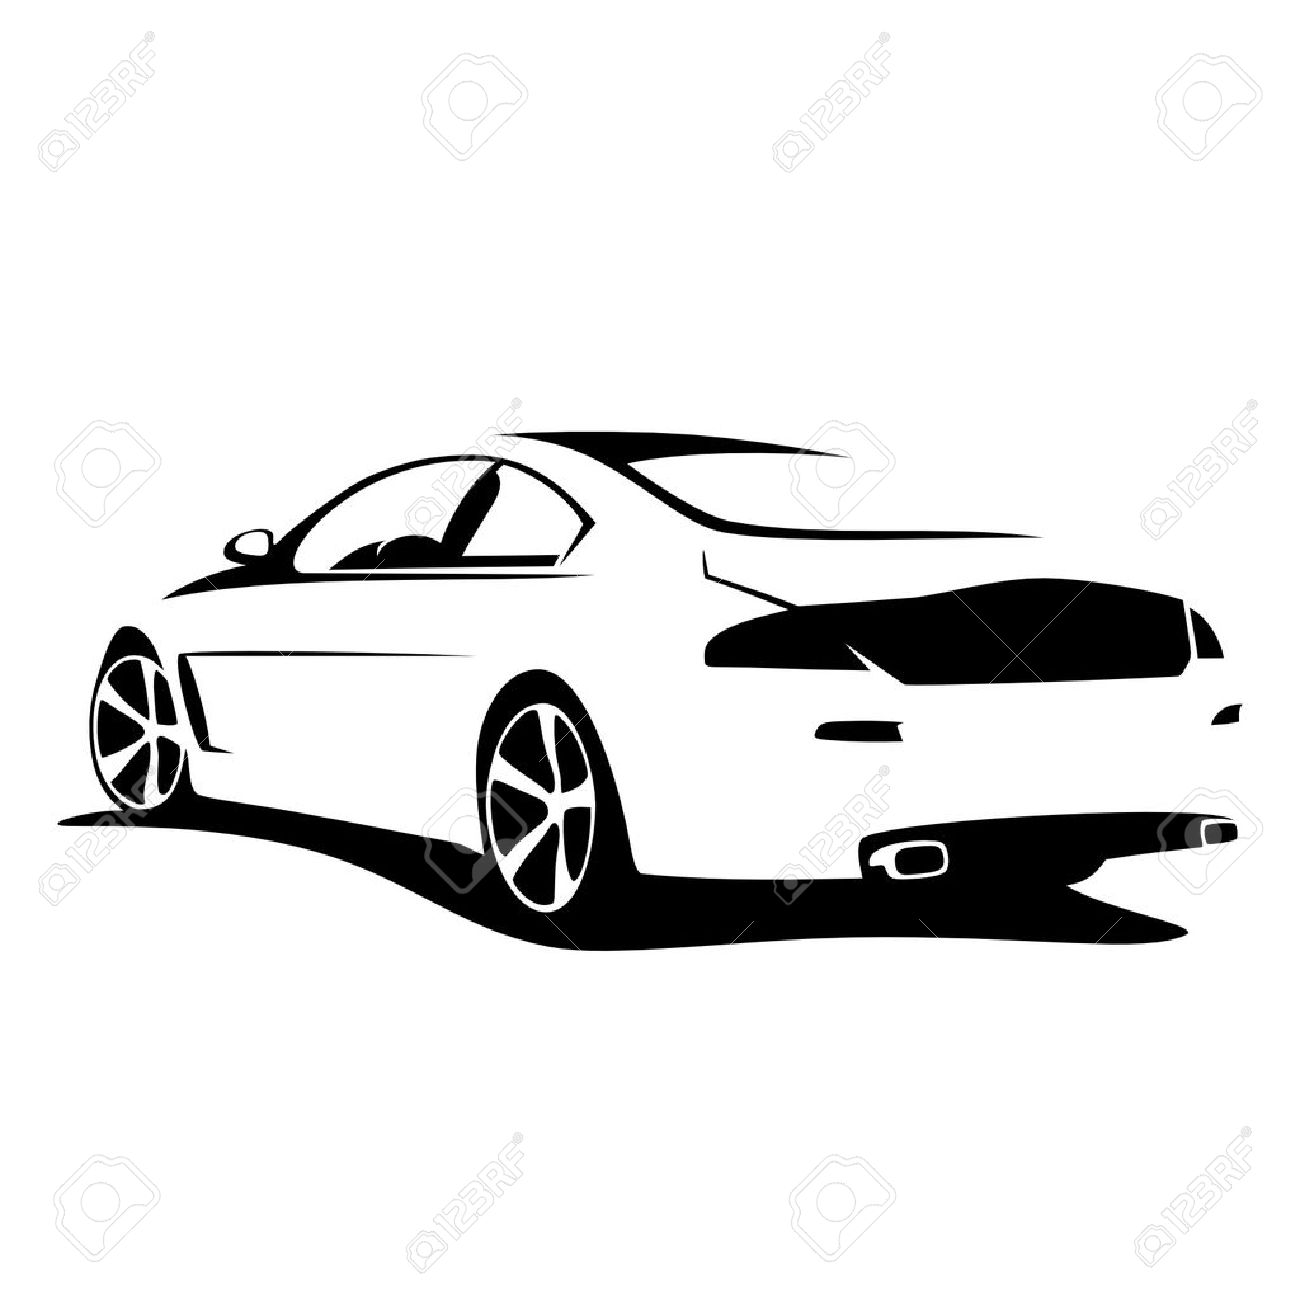 tuning car silhouette - 20227405